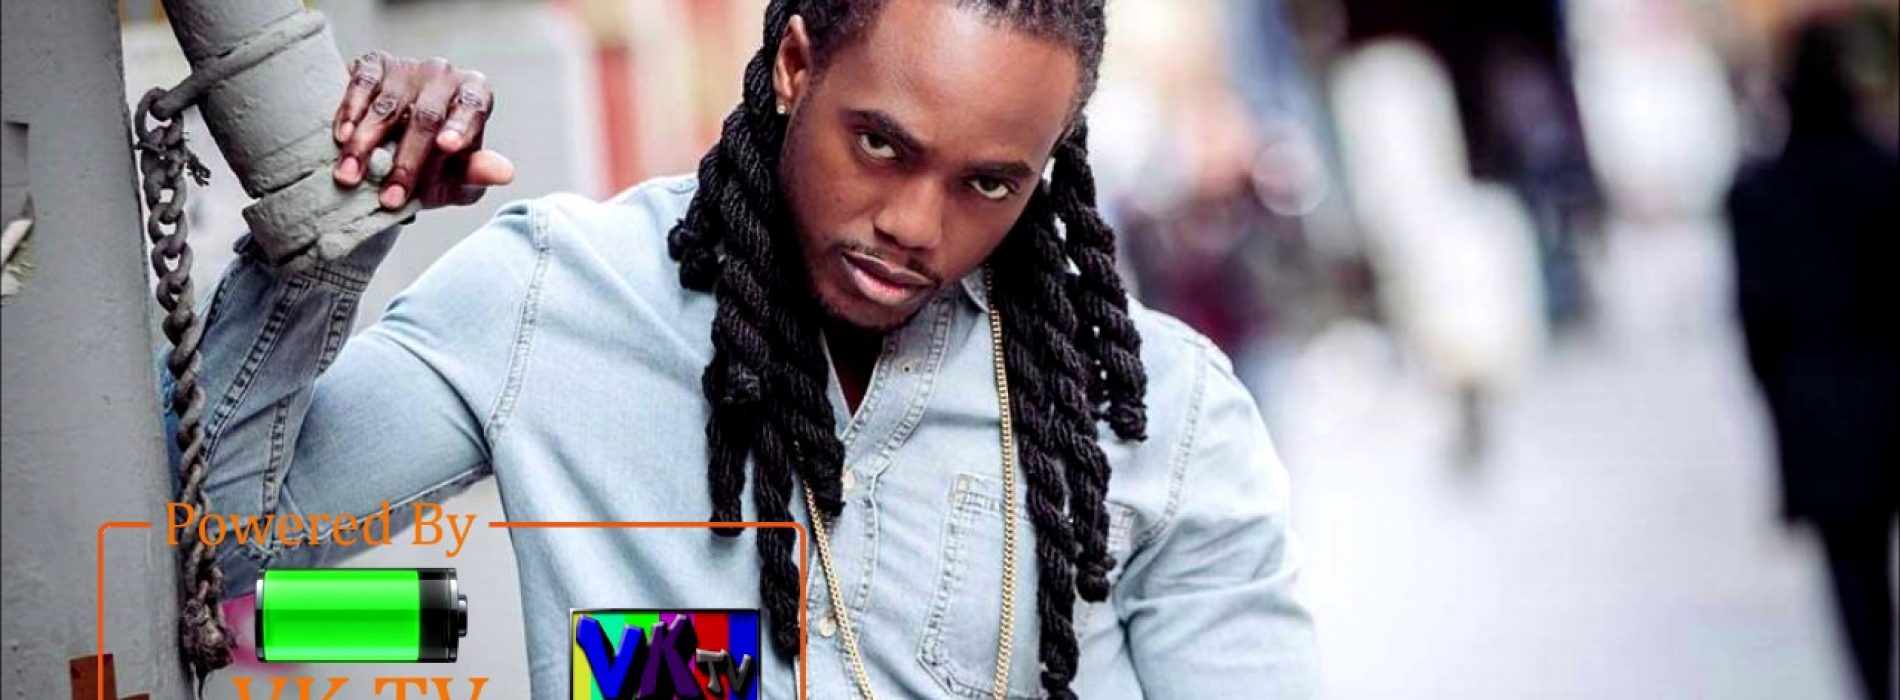 Écoute une sélèction reggae-dancehall avec TEEJAY – « Fire » , KIPRICH- « Fake Di Cummin », I-Octane – « Party Start », VYBZ KARTEL – « Euphoria », POPCAAN – « Up Forever », et Vershon – « My Success » – Mai 2017